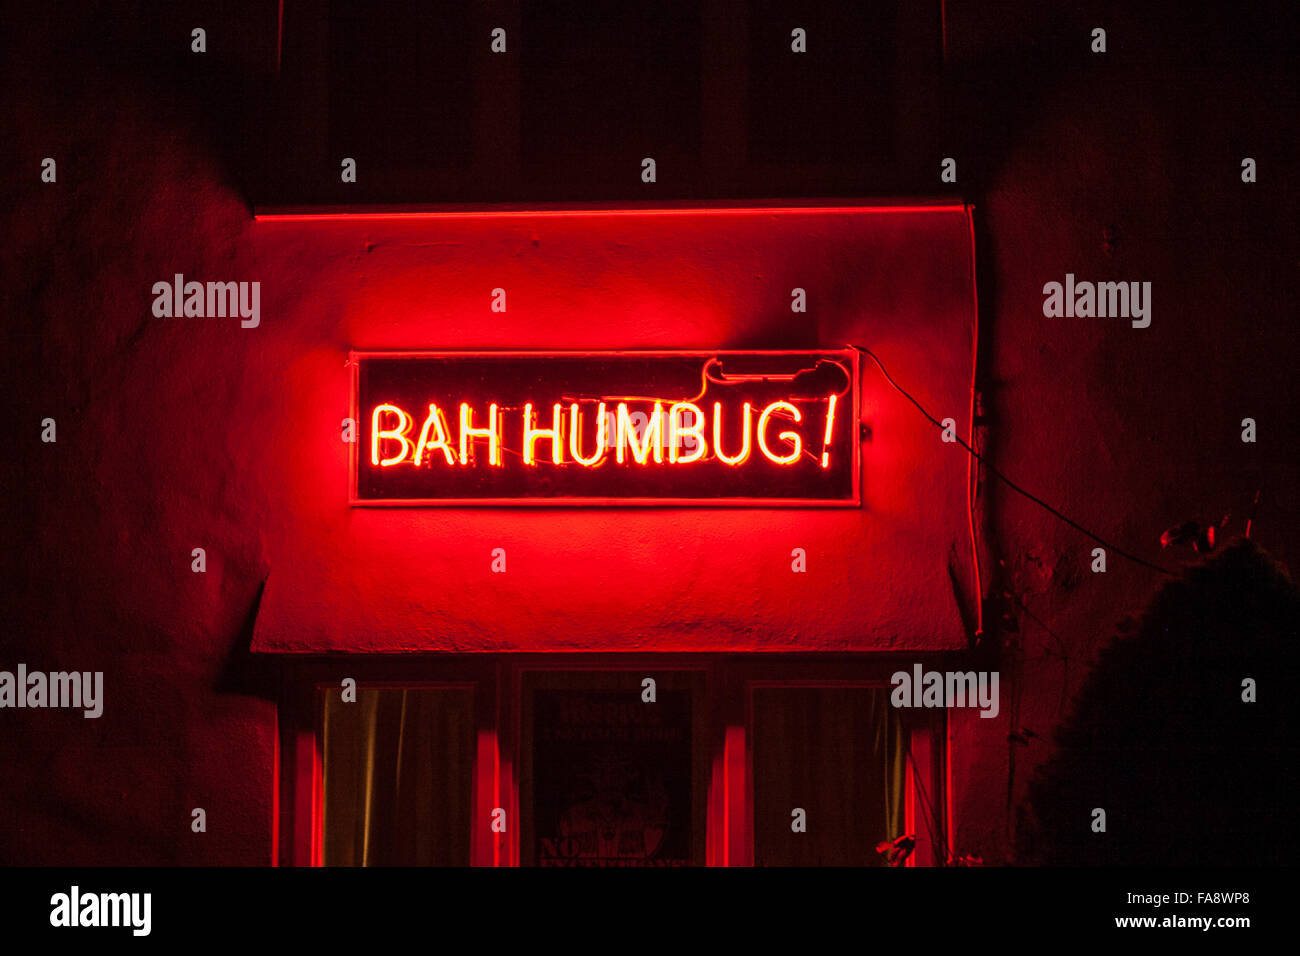 Neon Sign in Essex cottage window at christmas  Bah Humbug!   A non festive spirit Christmas neon sign outside  - Stock Image